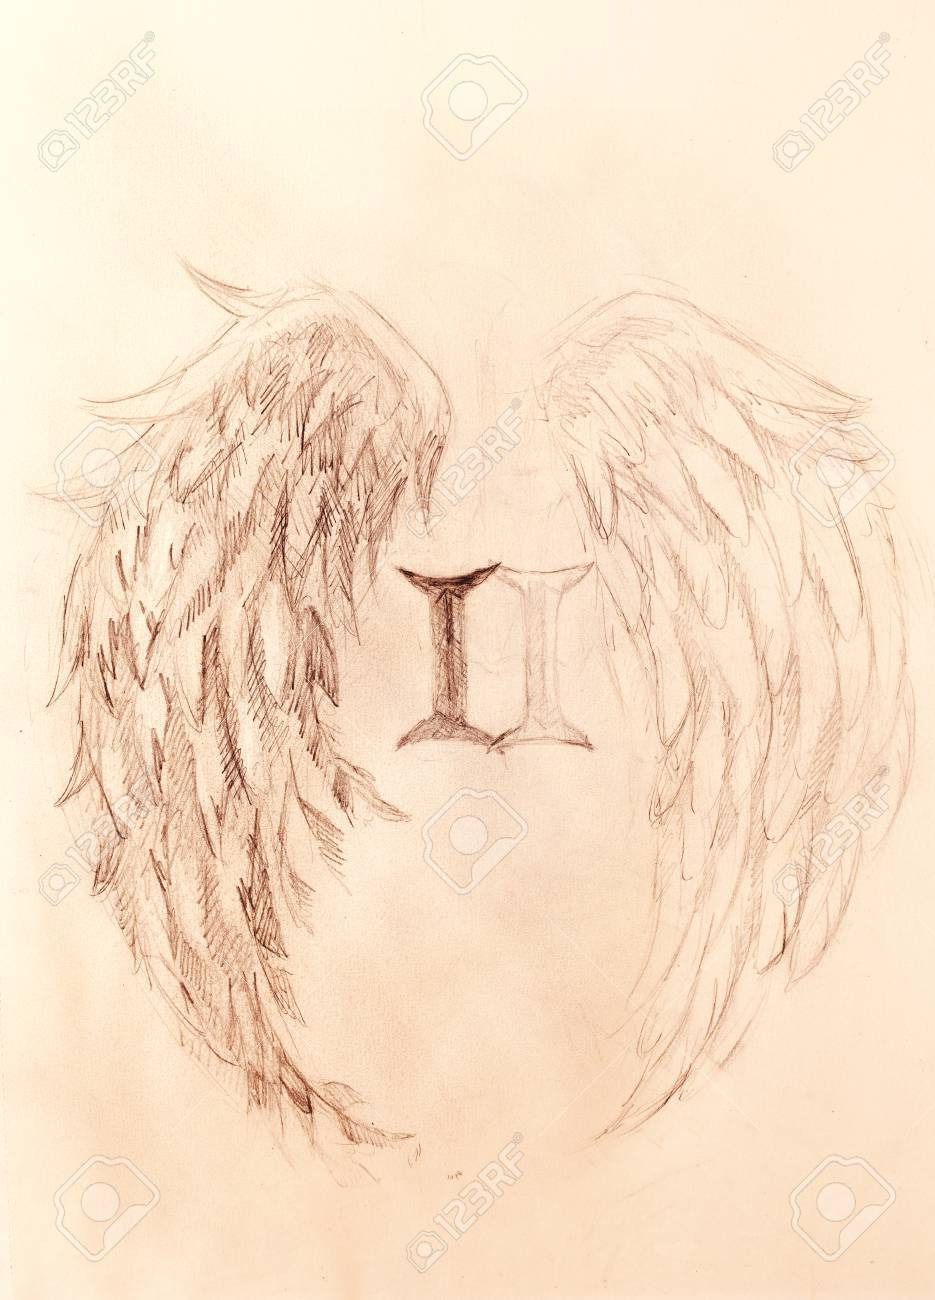 Pencil drawing on old paper angel wings and rome number sepia color stock